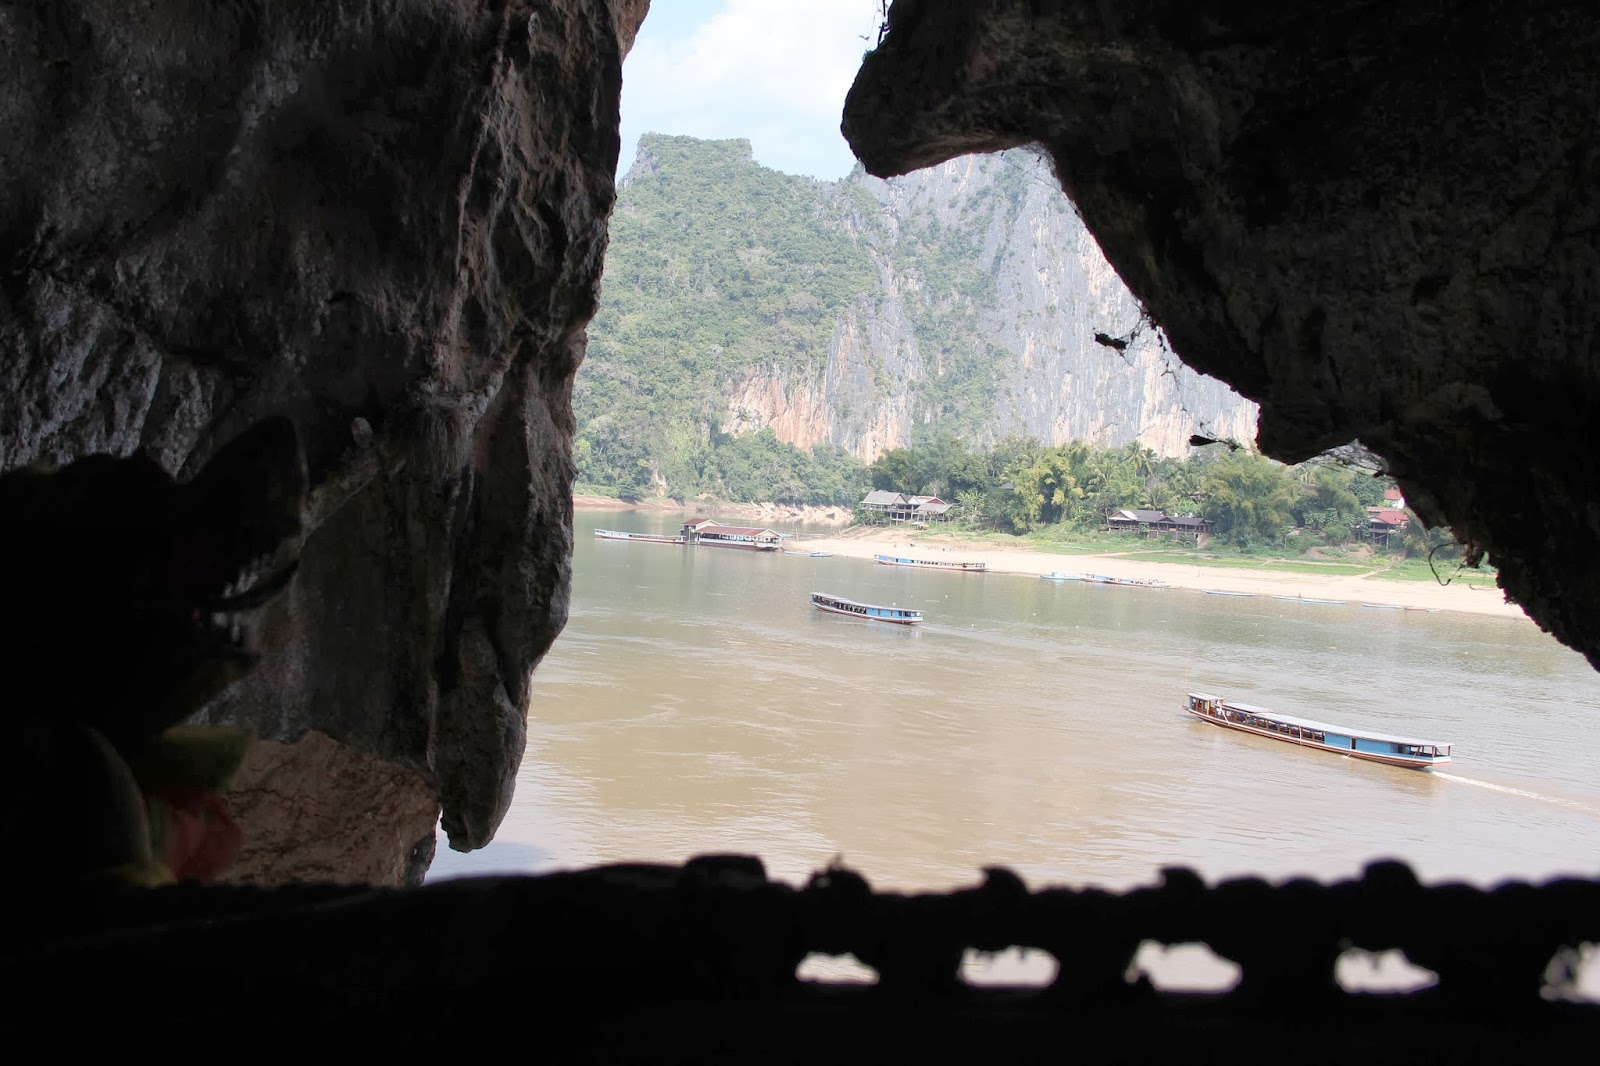 View from the Pak Ou cave across the Mekong River to the mouth of the Nam Ou River in Laos.